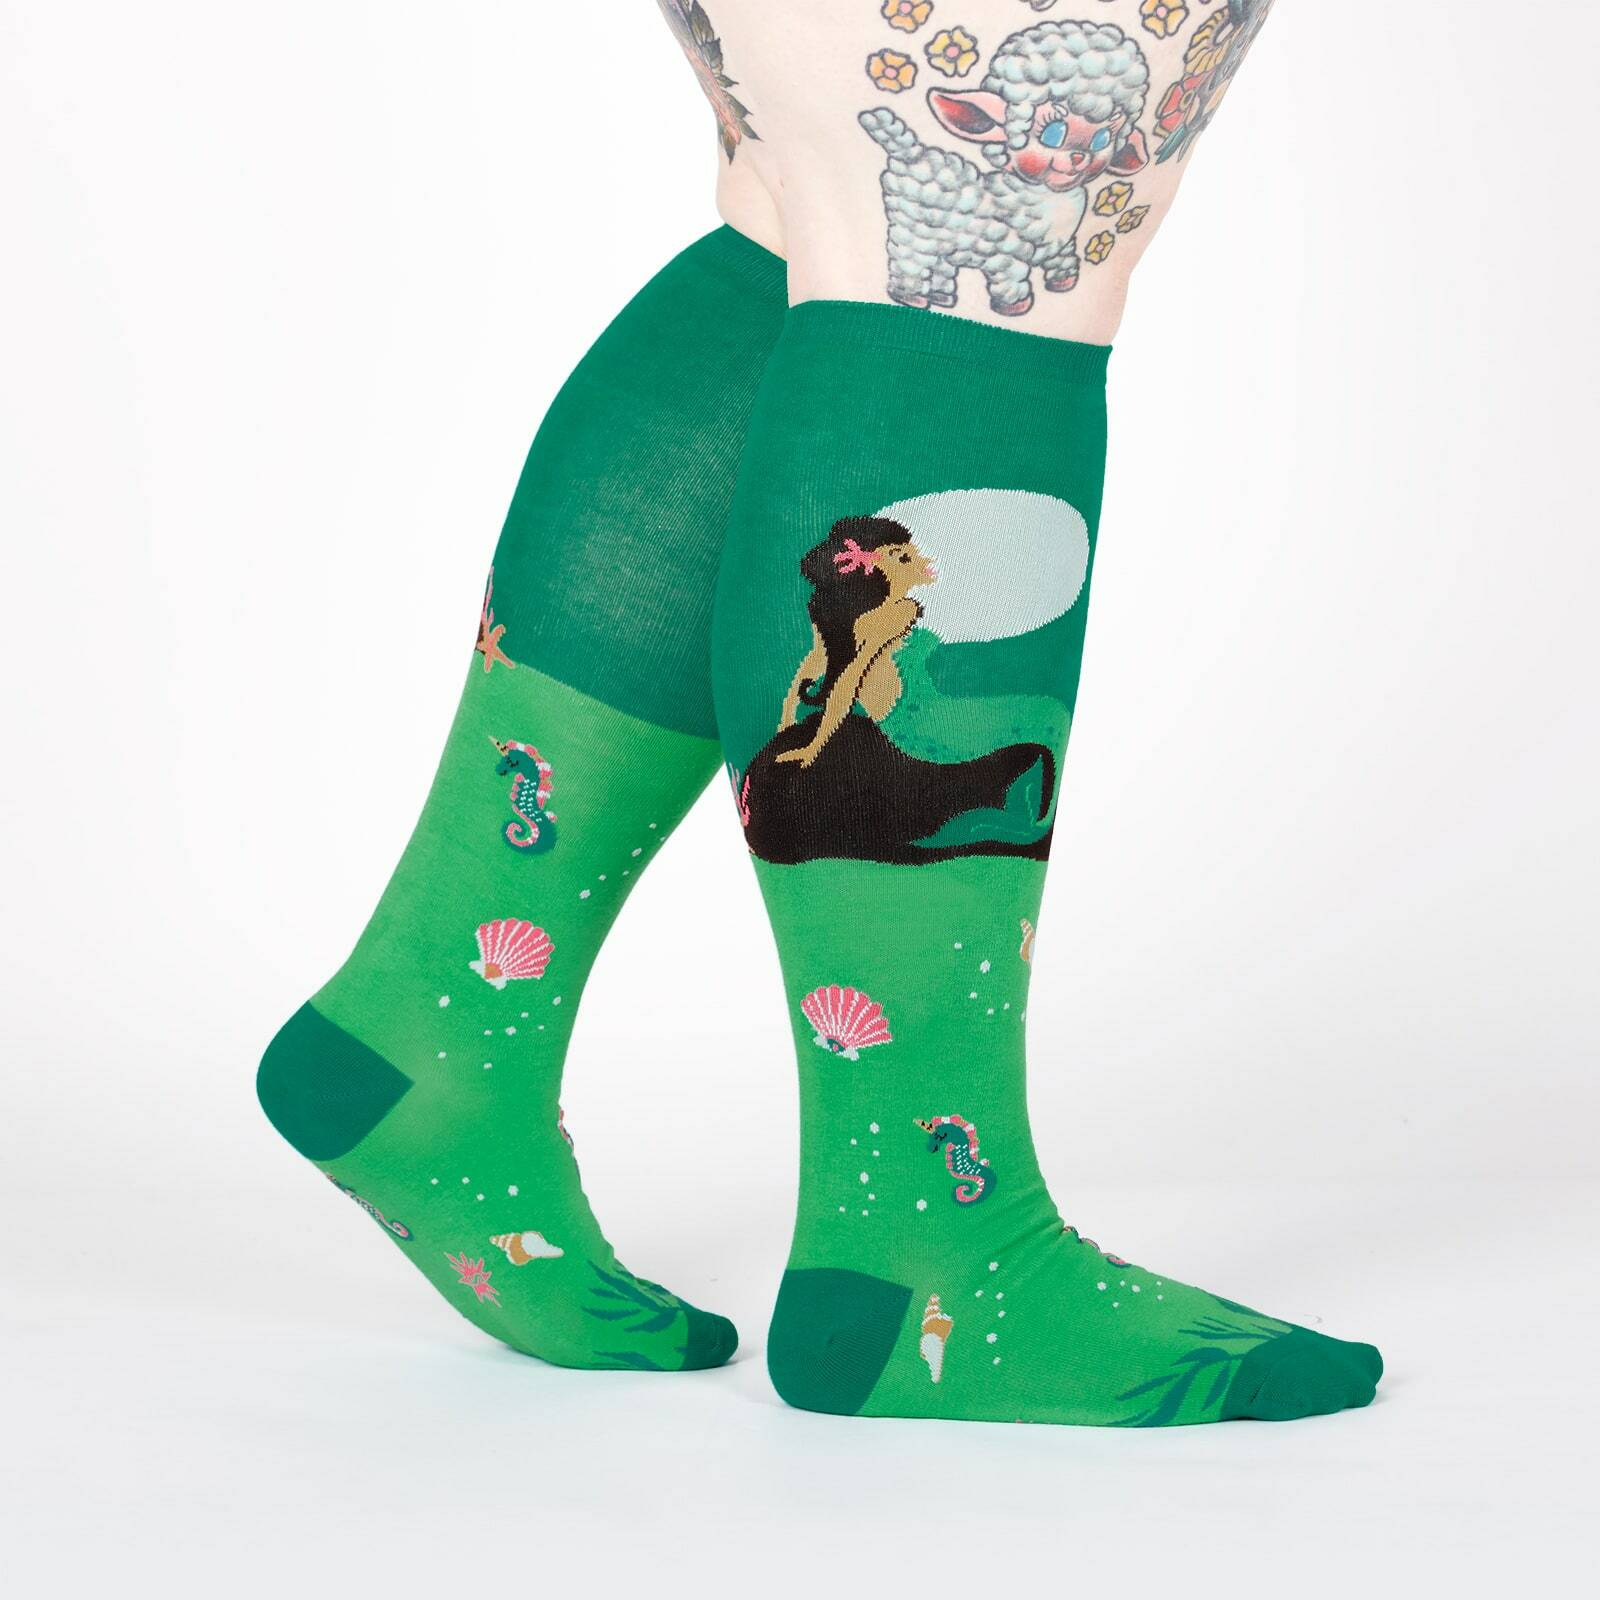 model wearing STRETCH-IT™ Moonlight Mermaid - Wide Calf - Mermaid Moonbathing Over Water Knee High Socks Green - Unisex